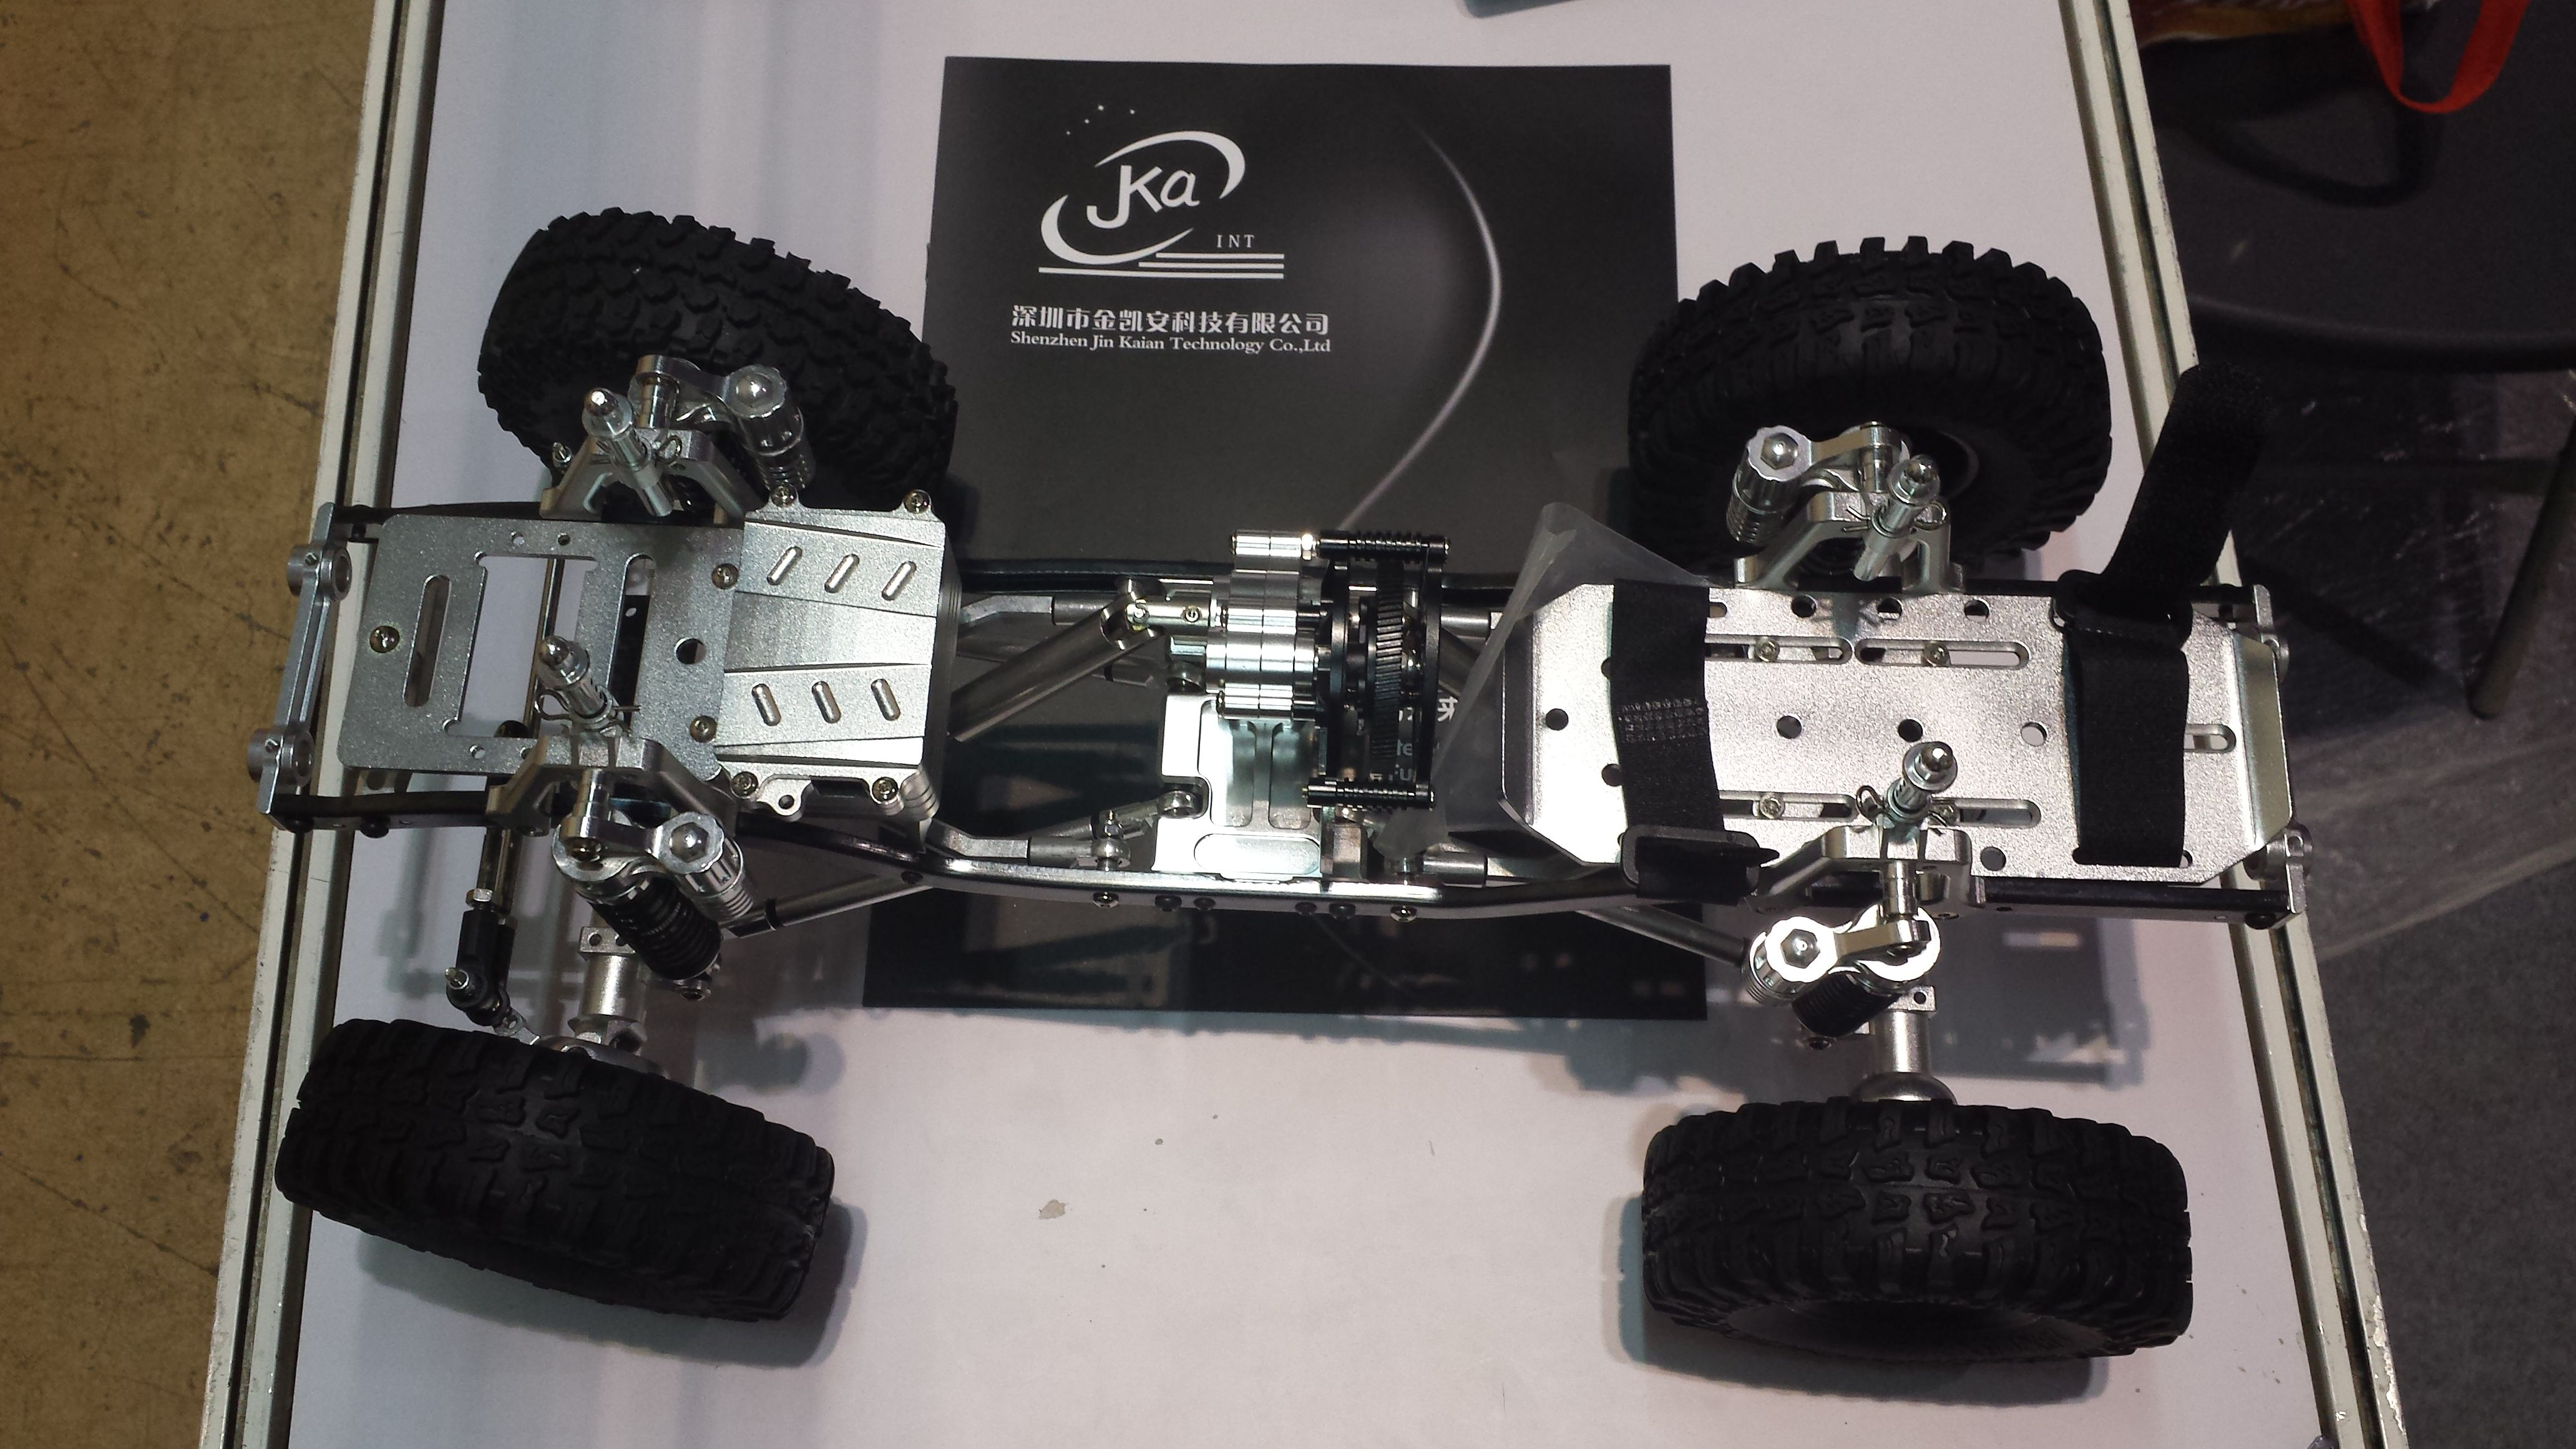 CNC full aluminum alloy axial scx10 chassis kit | rc crawler